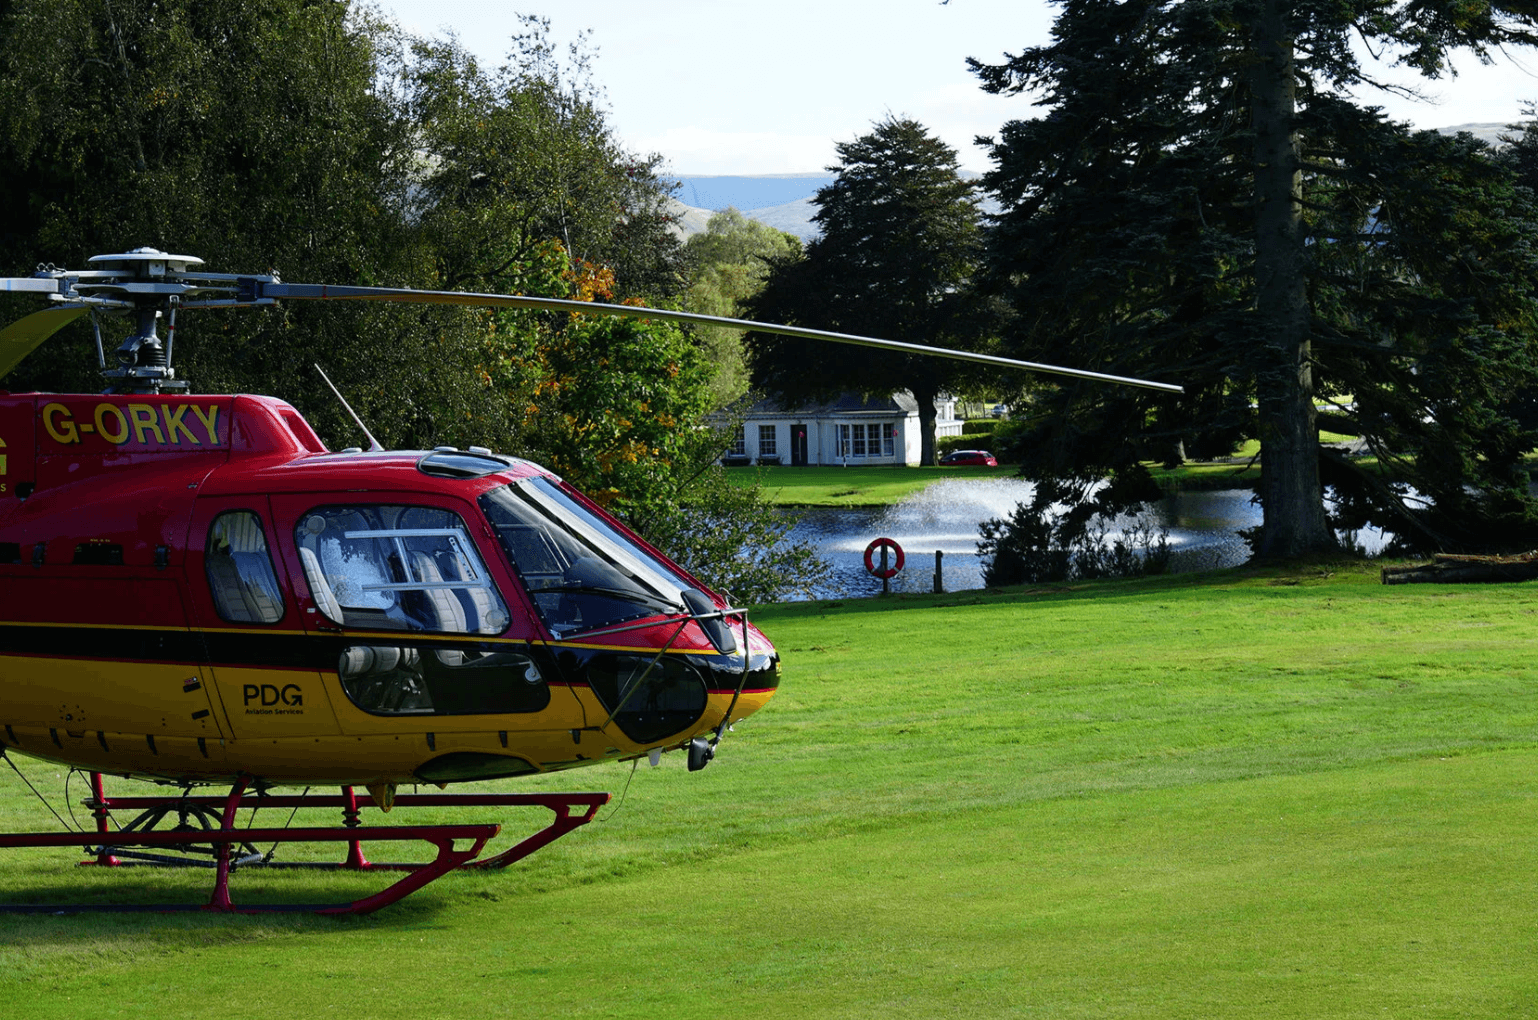 Helicopter on Lawn